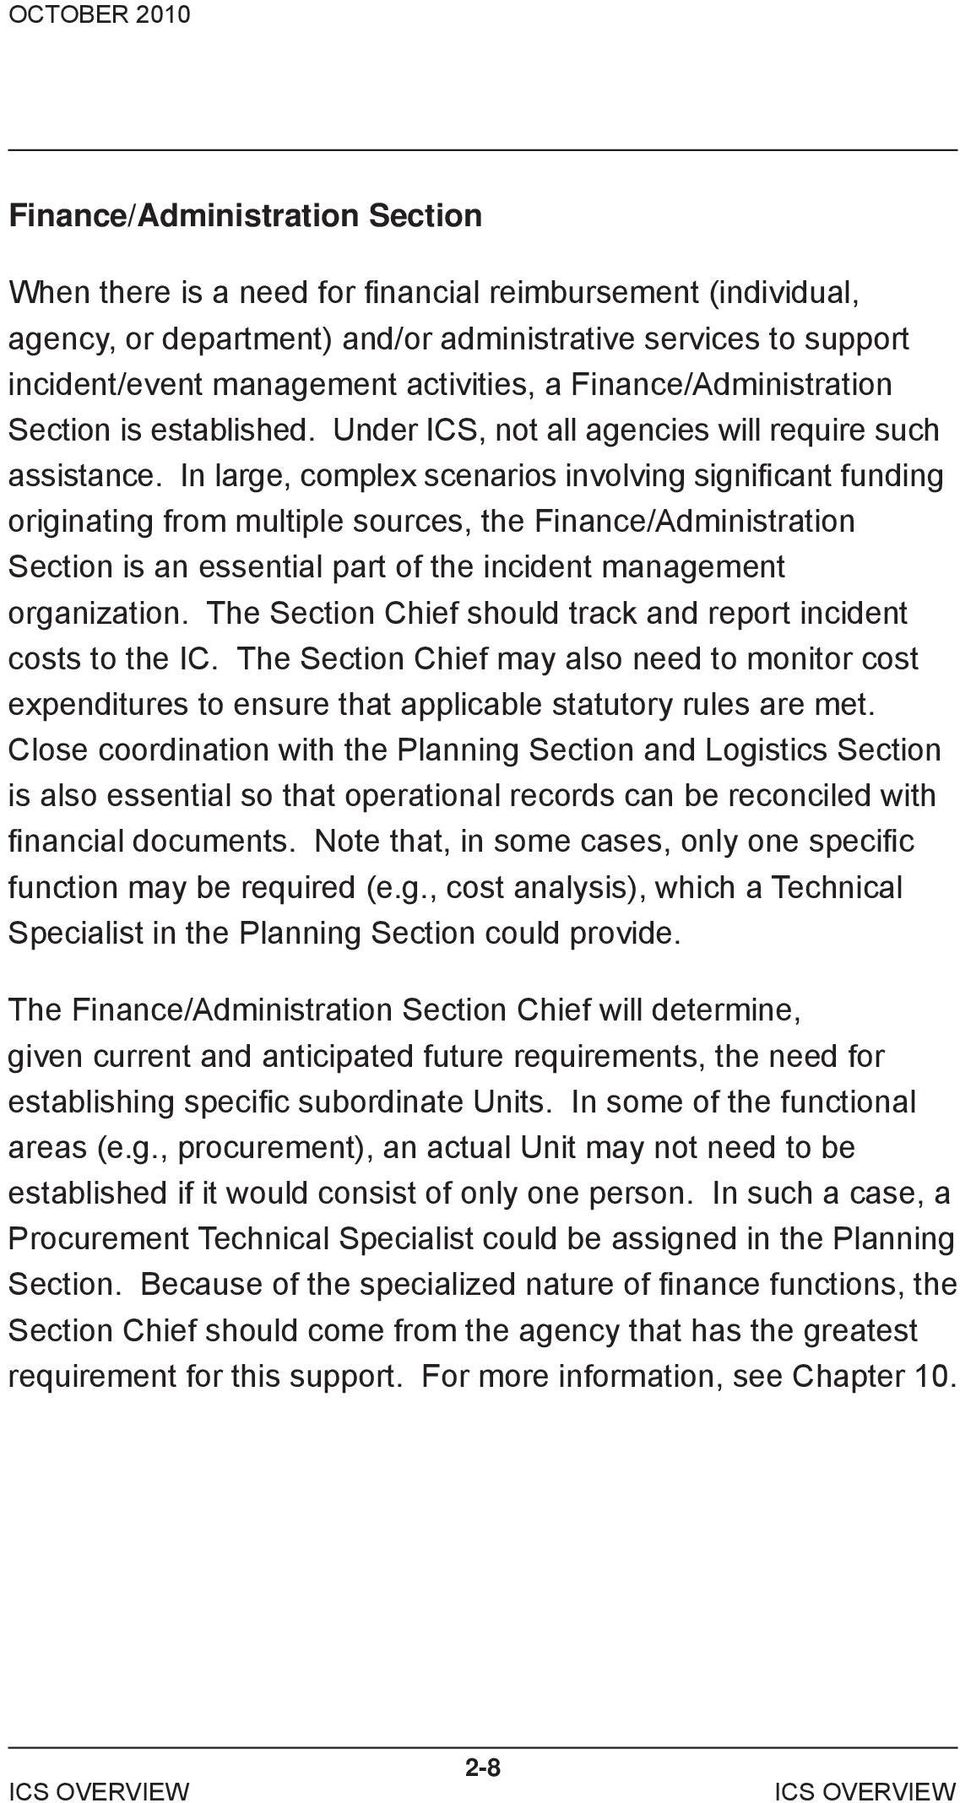 In large, complex scenarios involving significant funding originating from multiple sources, the Finance/Administration Section is an essential part of the incident management organization.